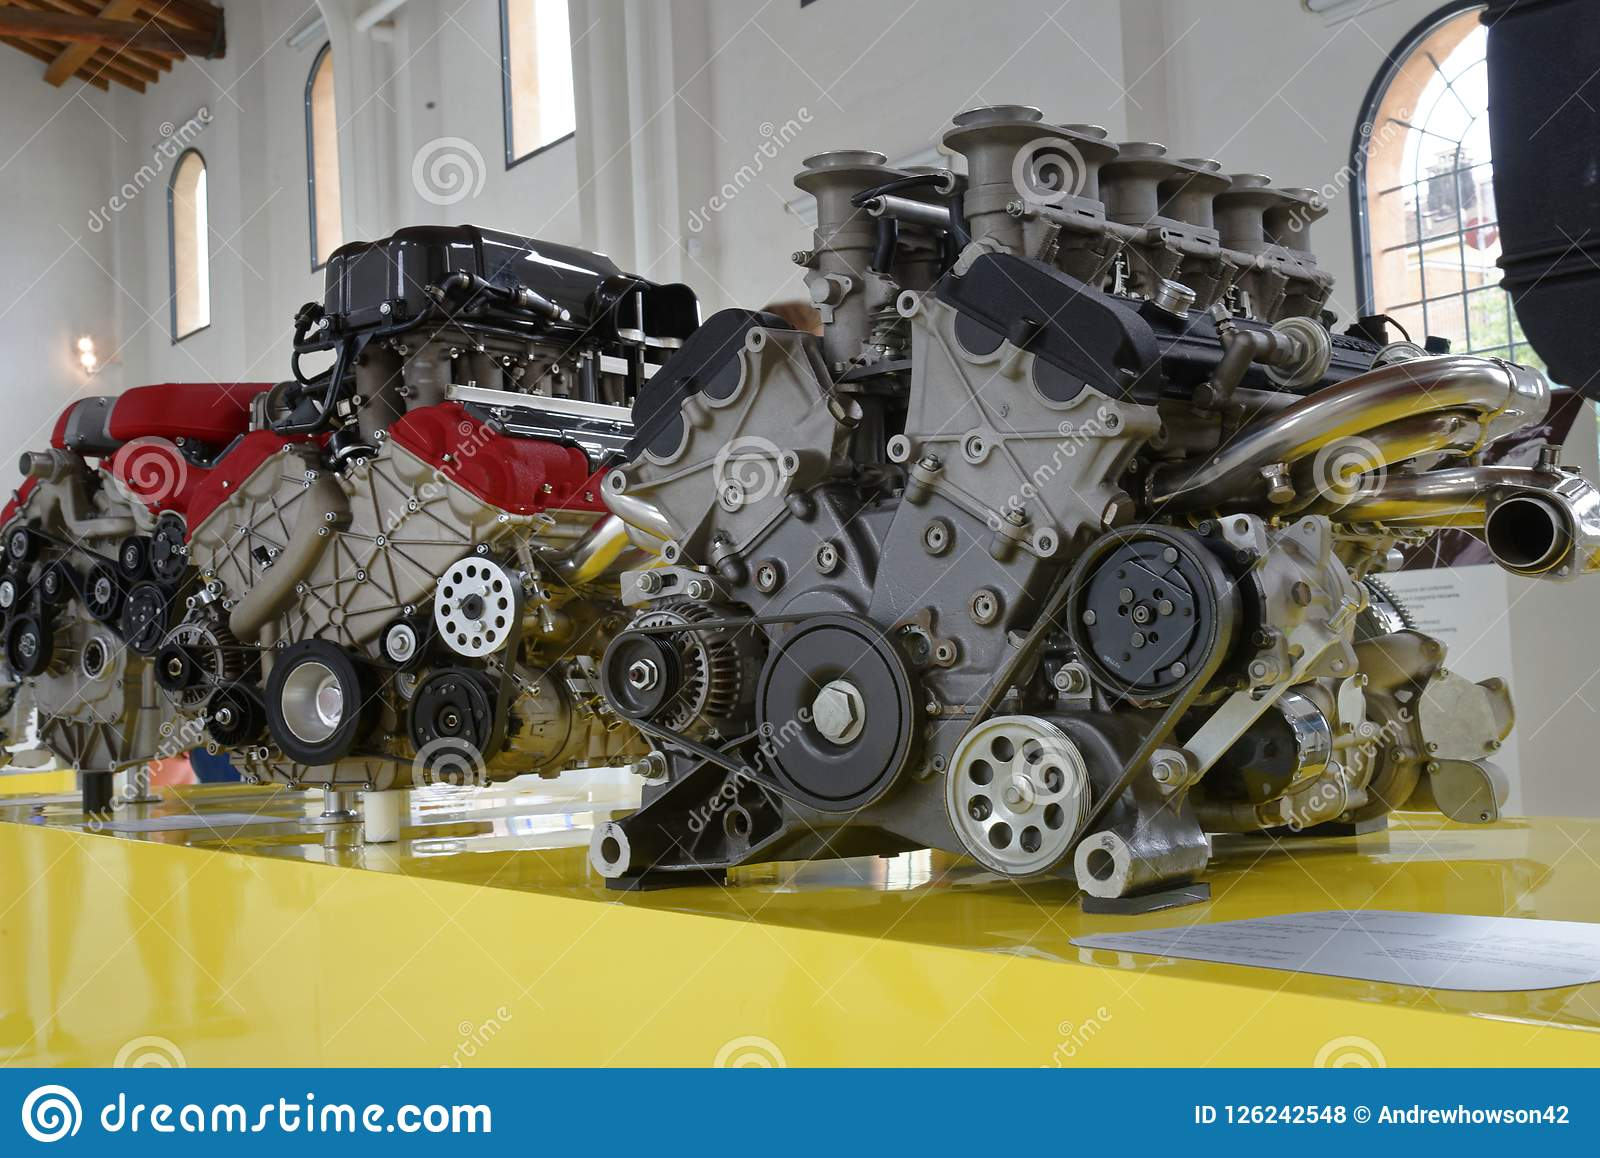 Modena Italy Powerful Ferrari V12 Engines Editorial Stock Photo Image Of Columns Collectible 126242548